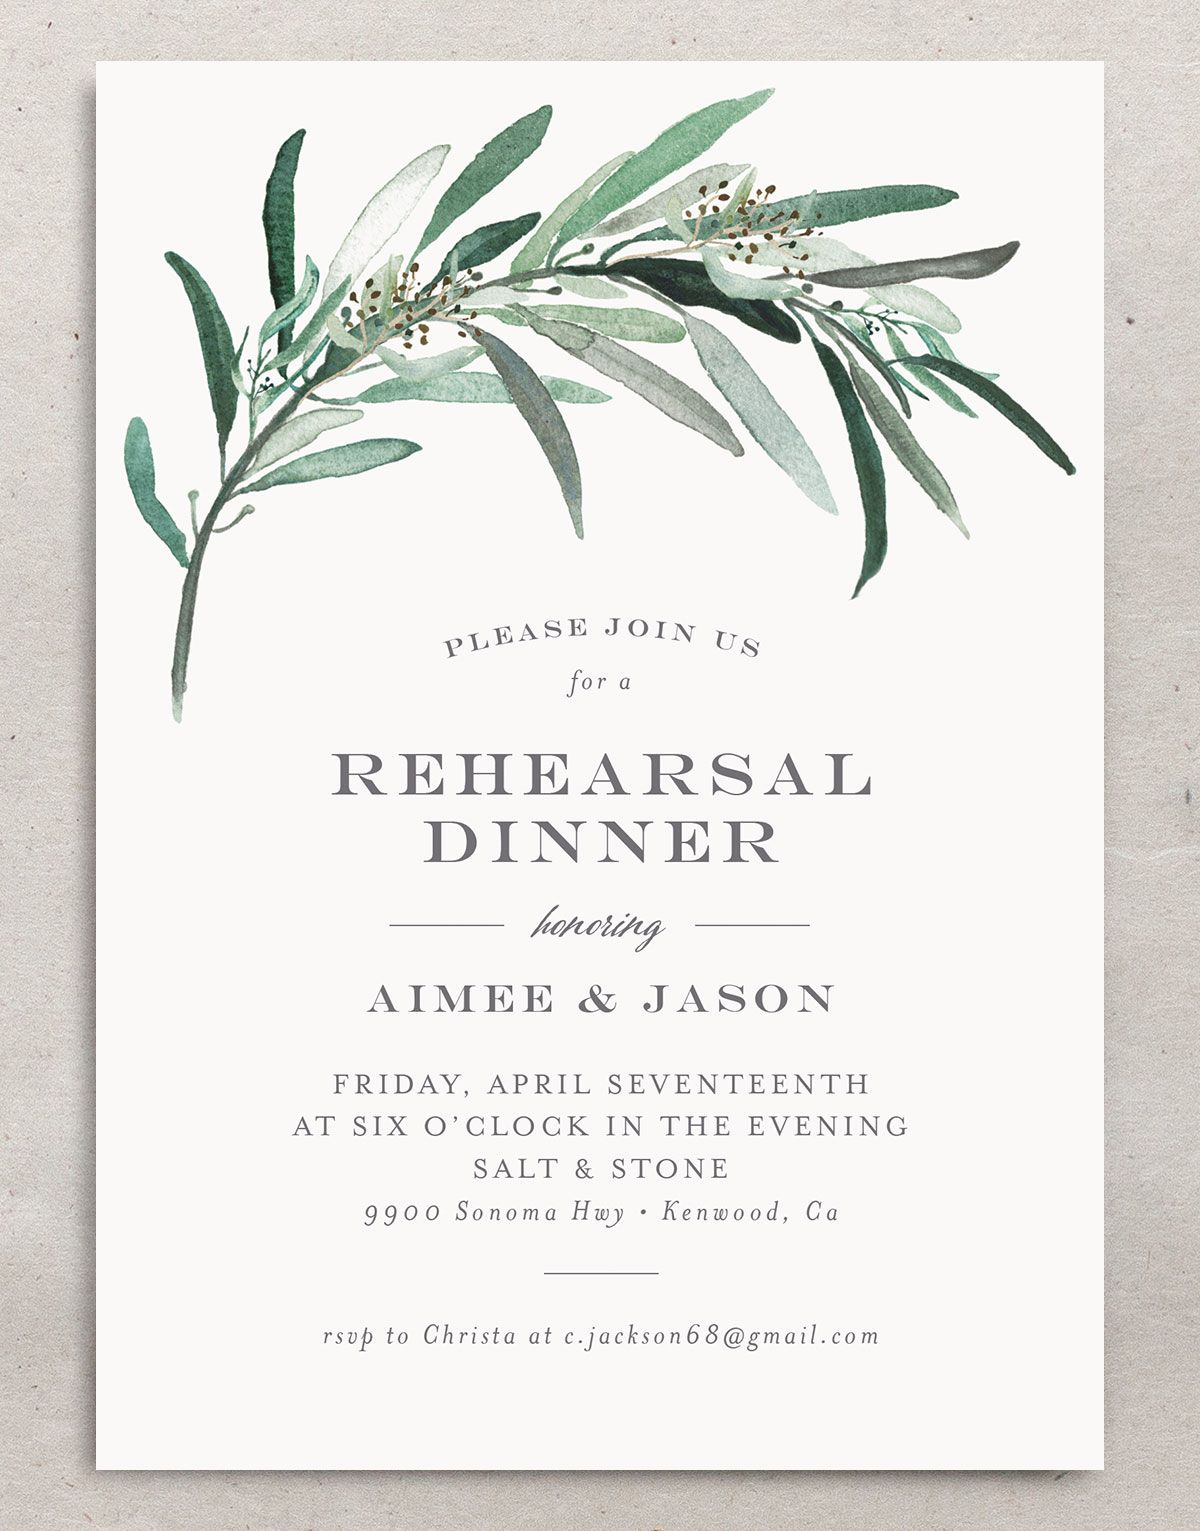 Lush Greenery Rehearsal Dinner invitation front